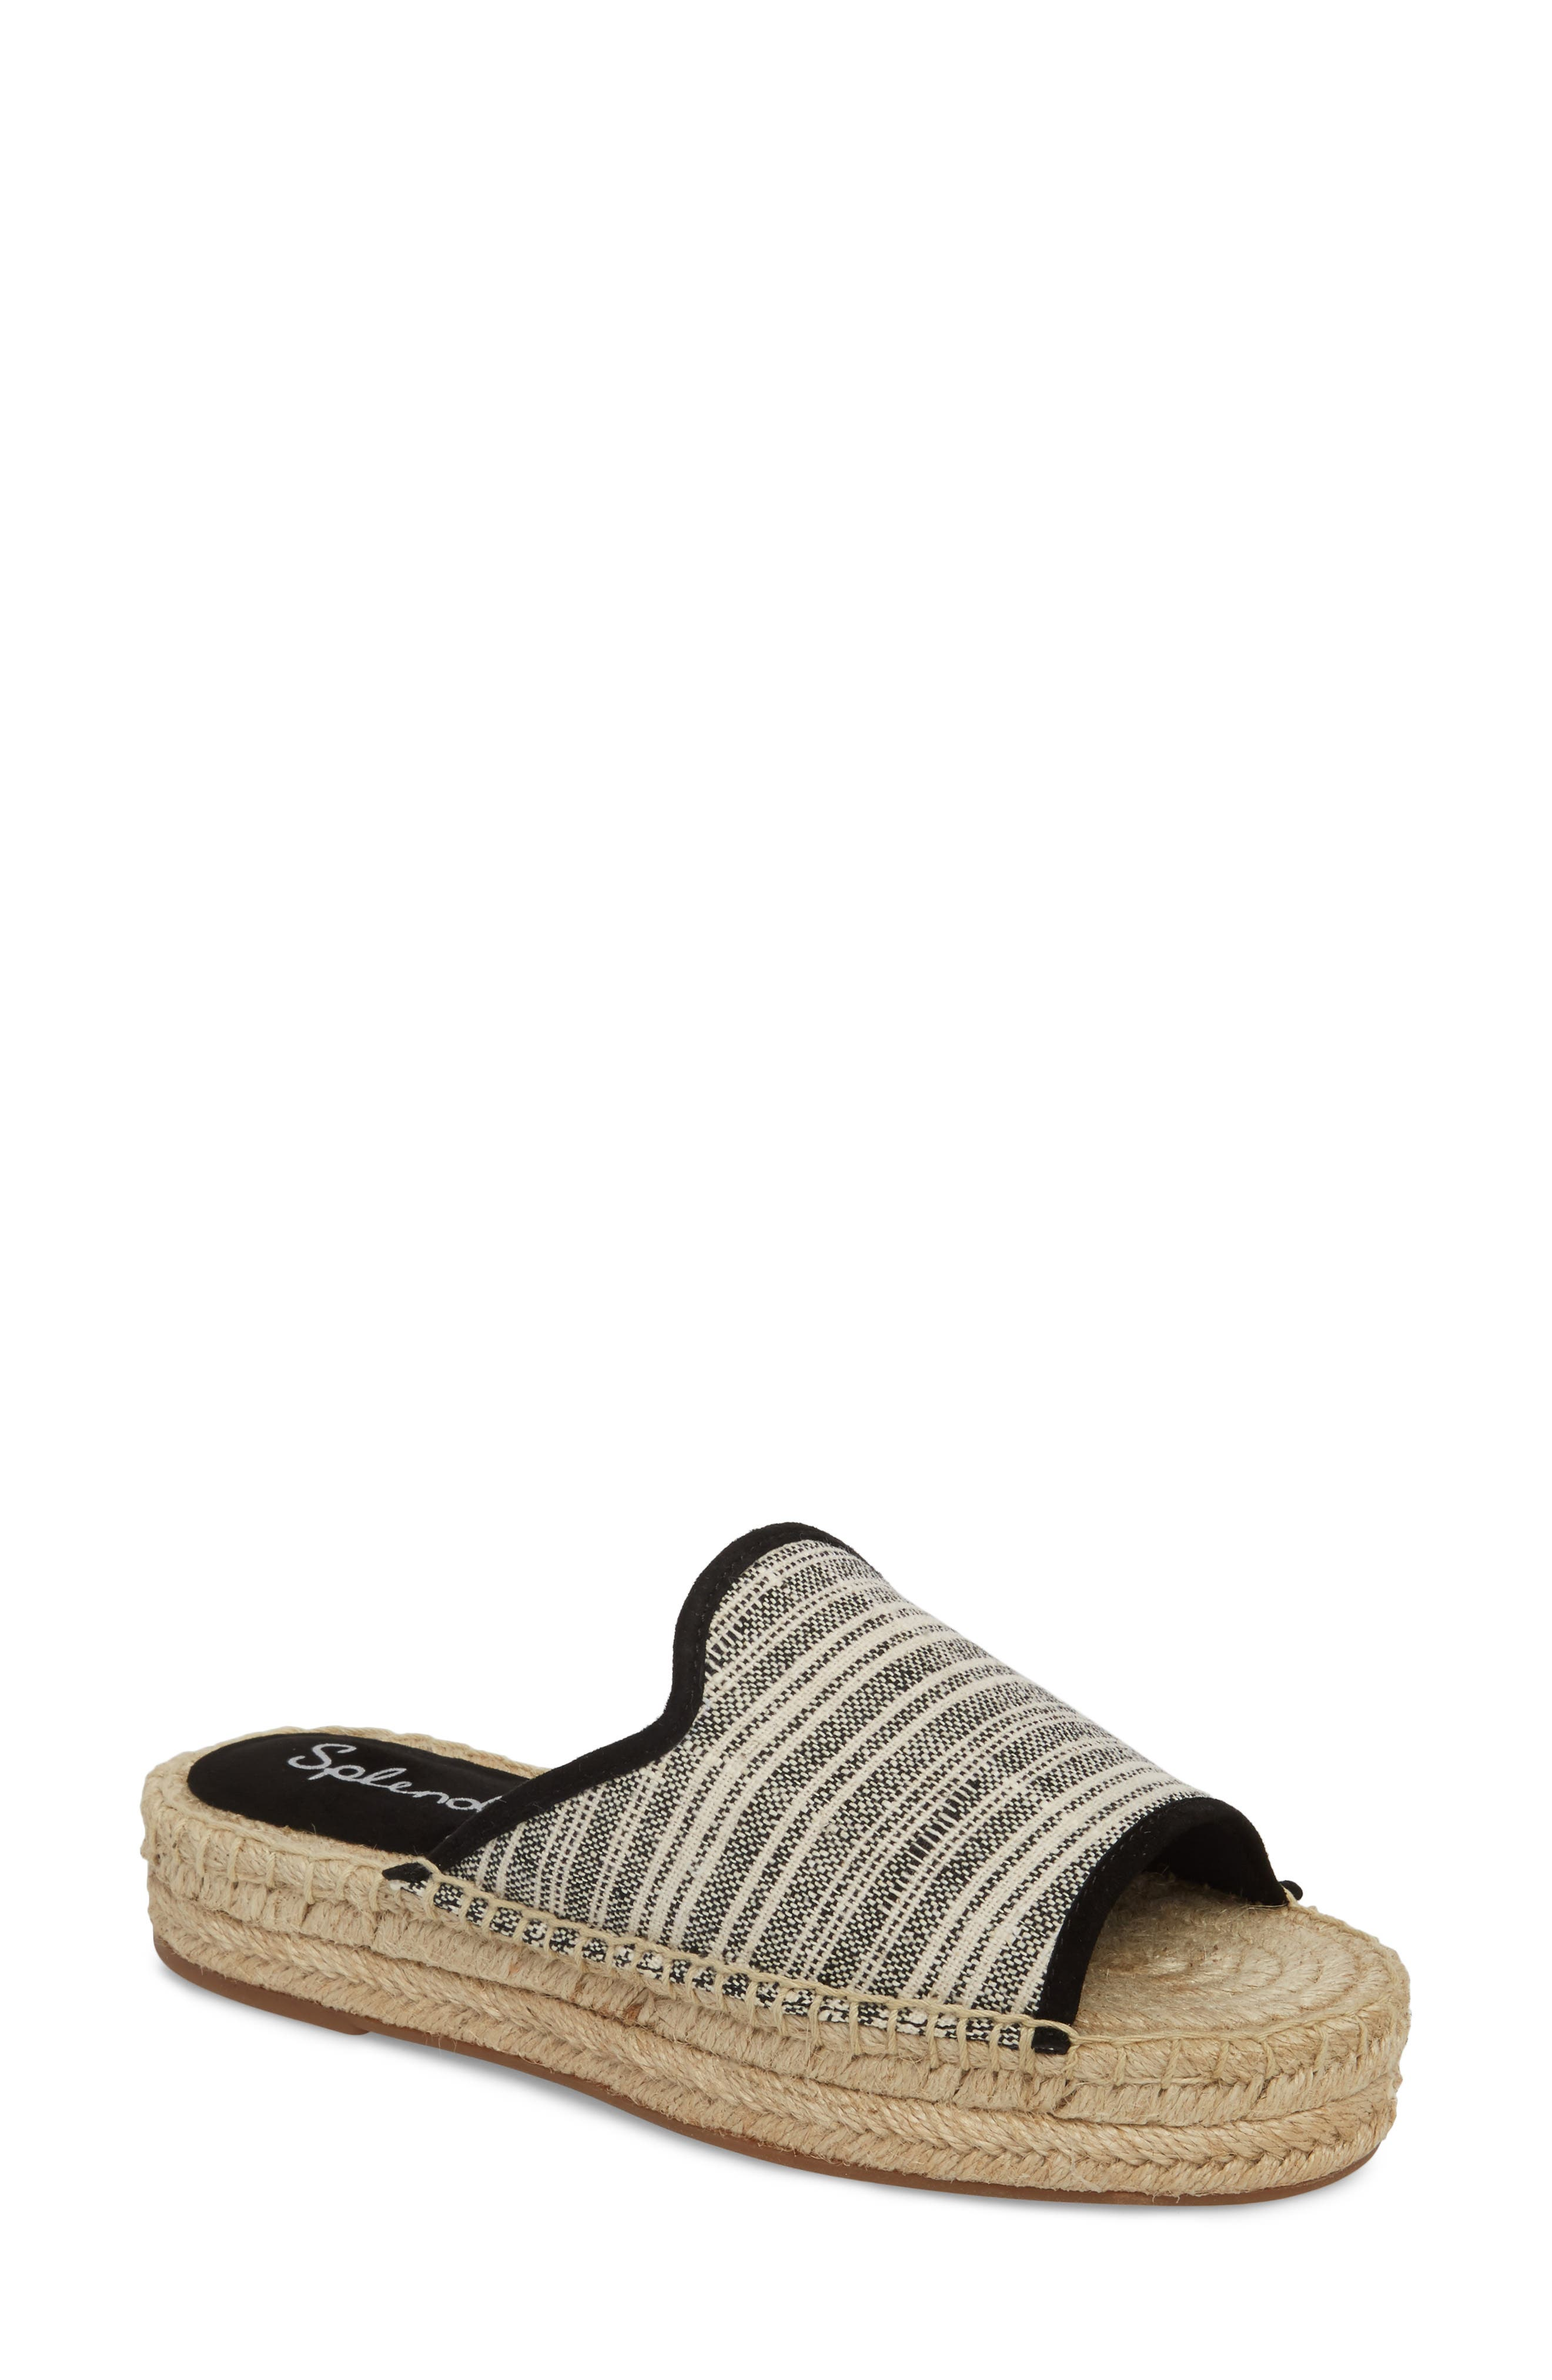 Franci Espadrille Slide Sandal,                         Main,                         color, BLACK/ NATURAL FABRIC